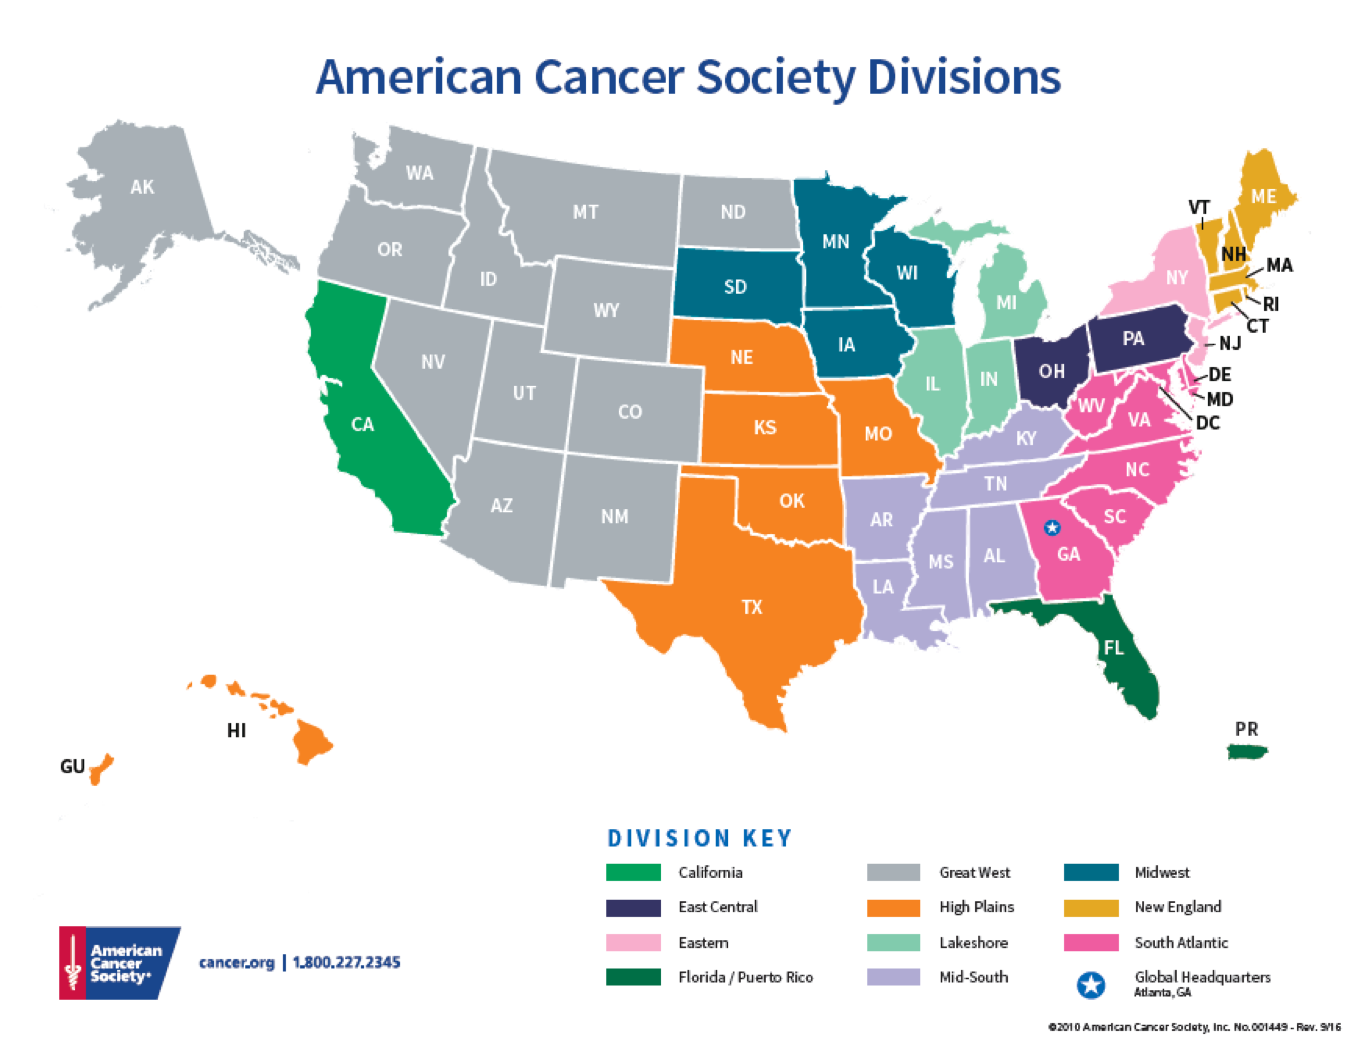 American Cancer Society Divisions